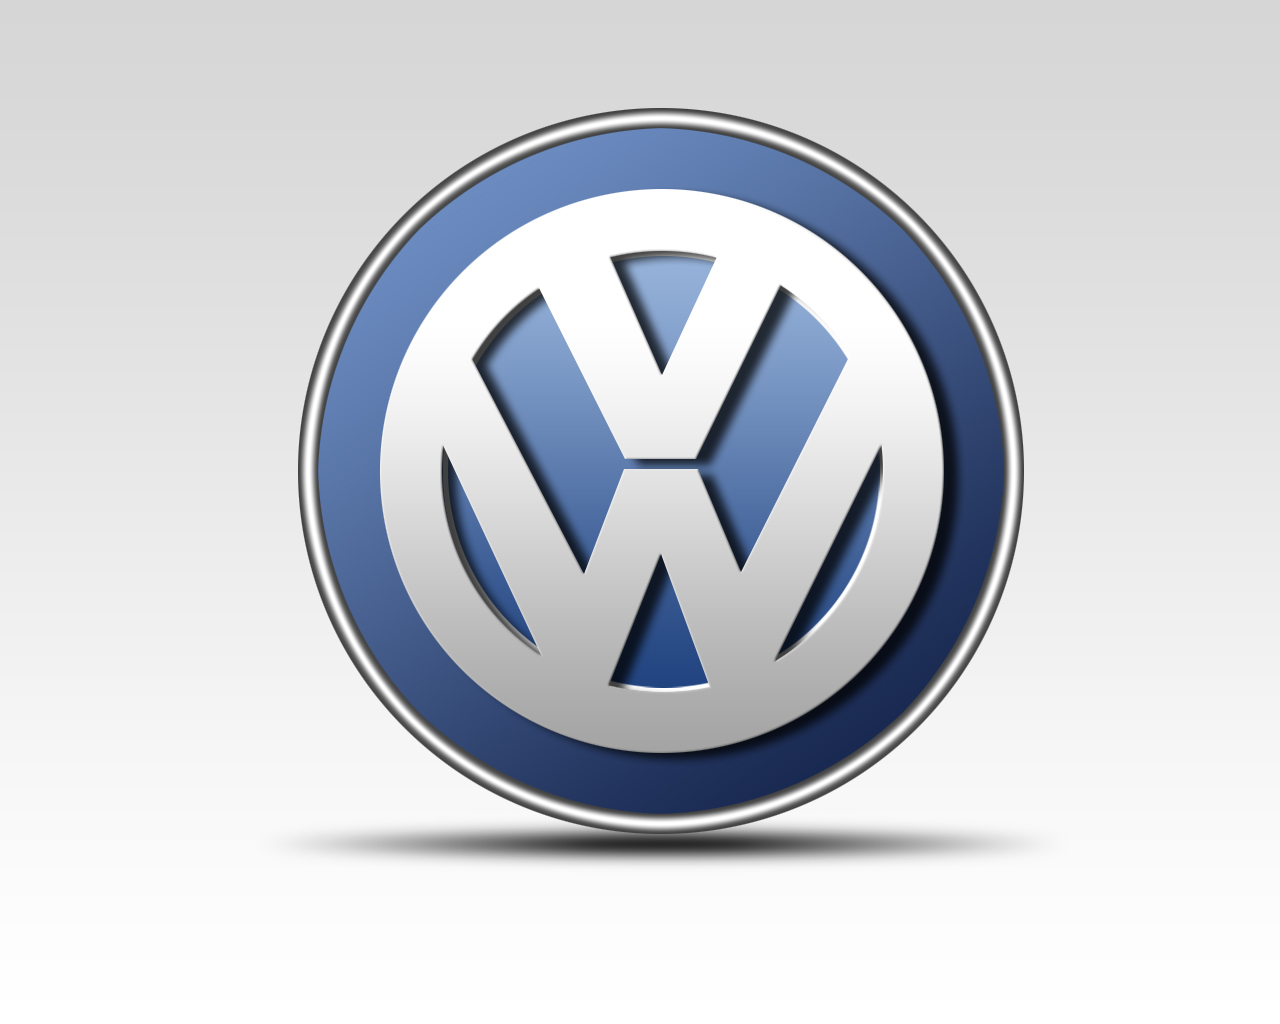 Volkswagen Logo, Volkswagen Car Symbol Meaning and History.